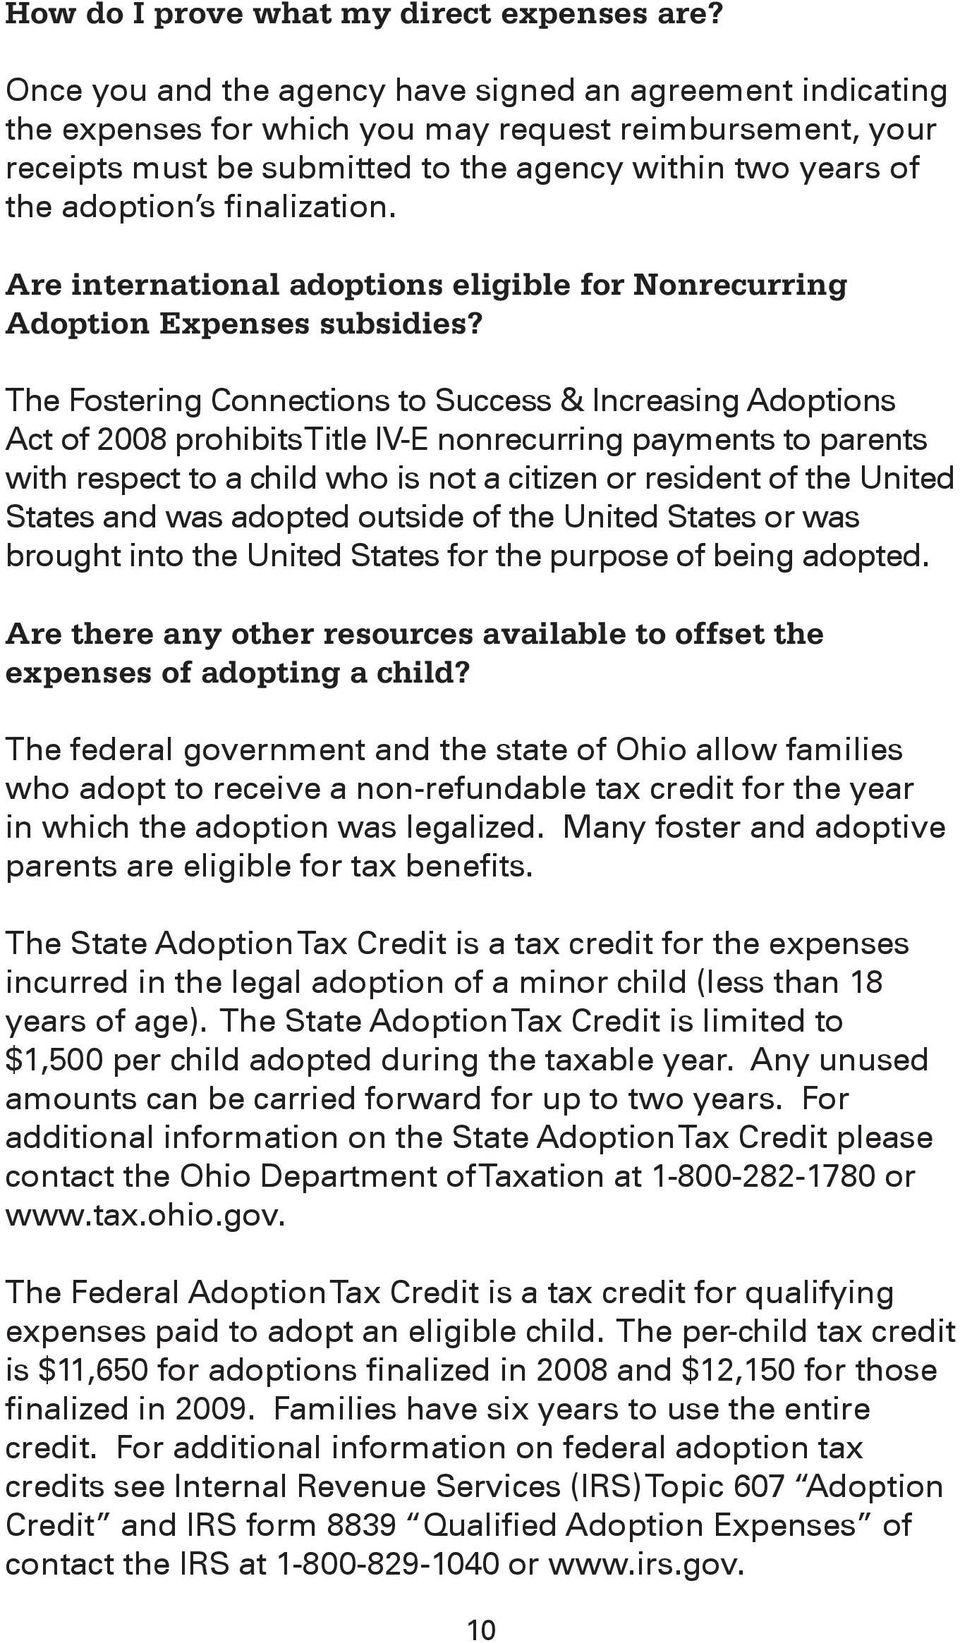 finalization. Are international adoptions eligible for Nonrecurring Adoption Expenses subsidies?